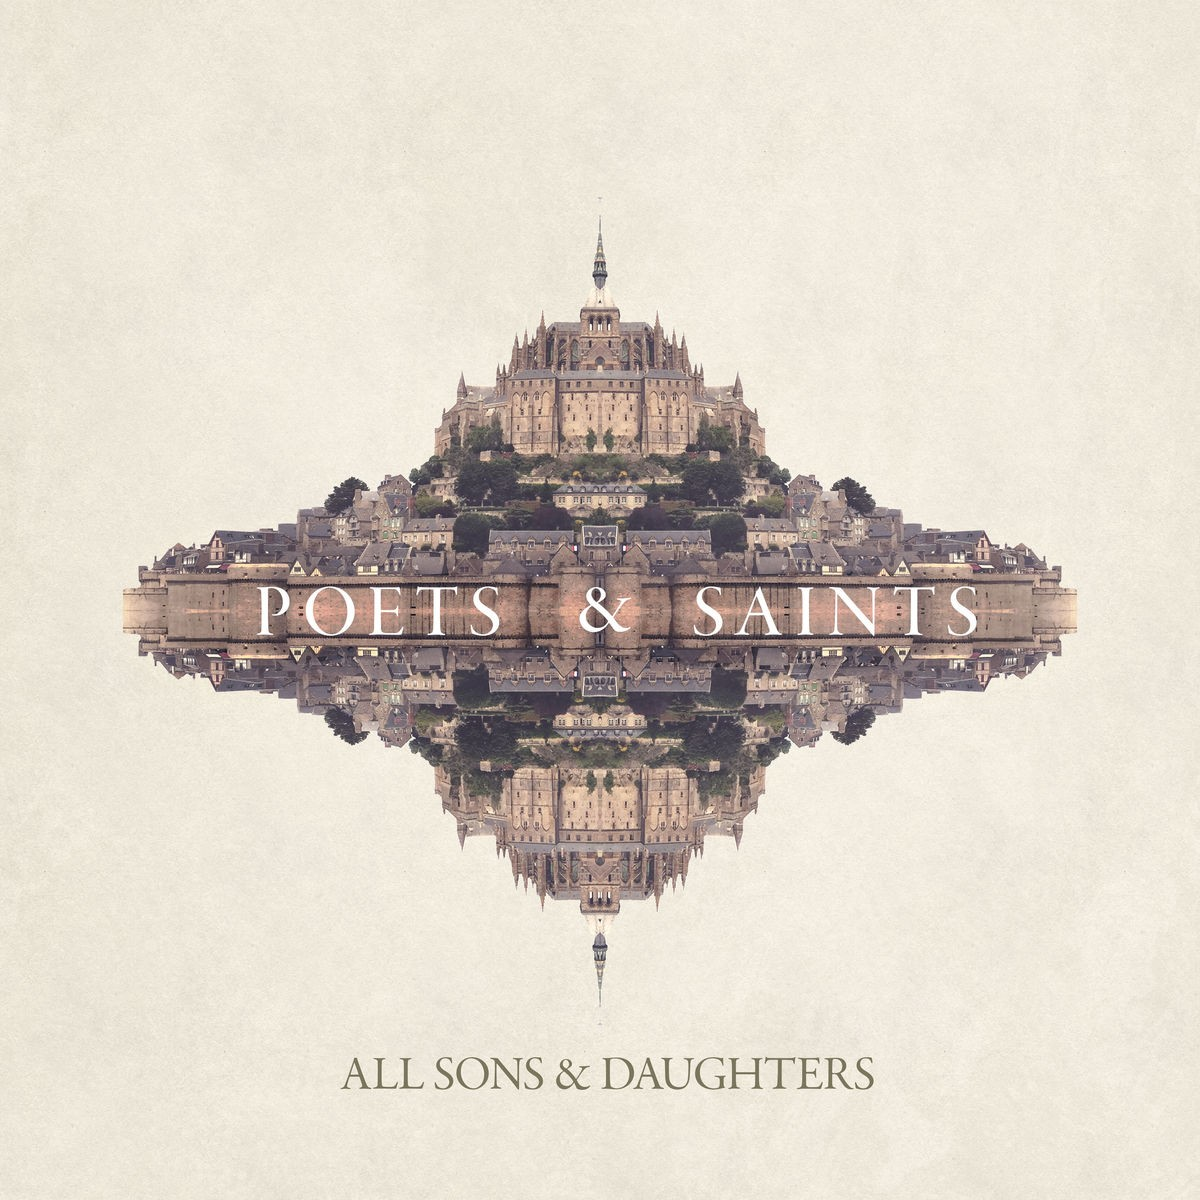 All Sons & Daughters - Poets & Saints CD - INTGCD65572